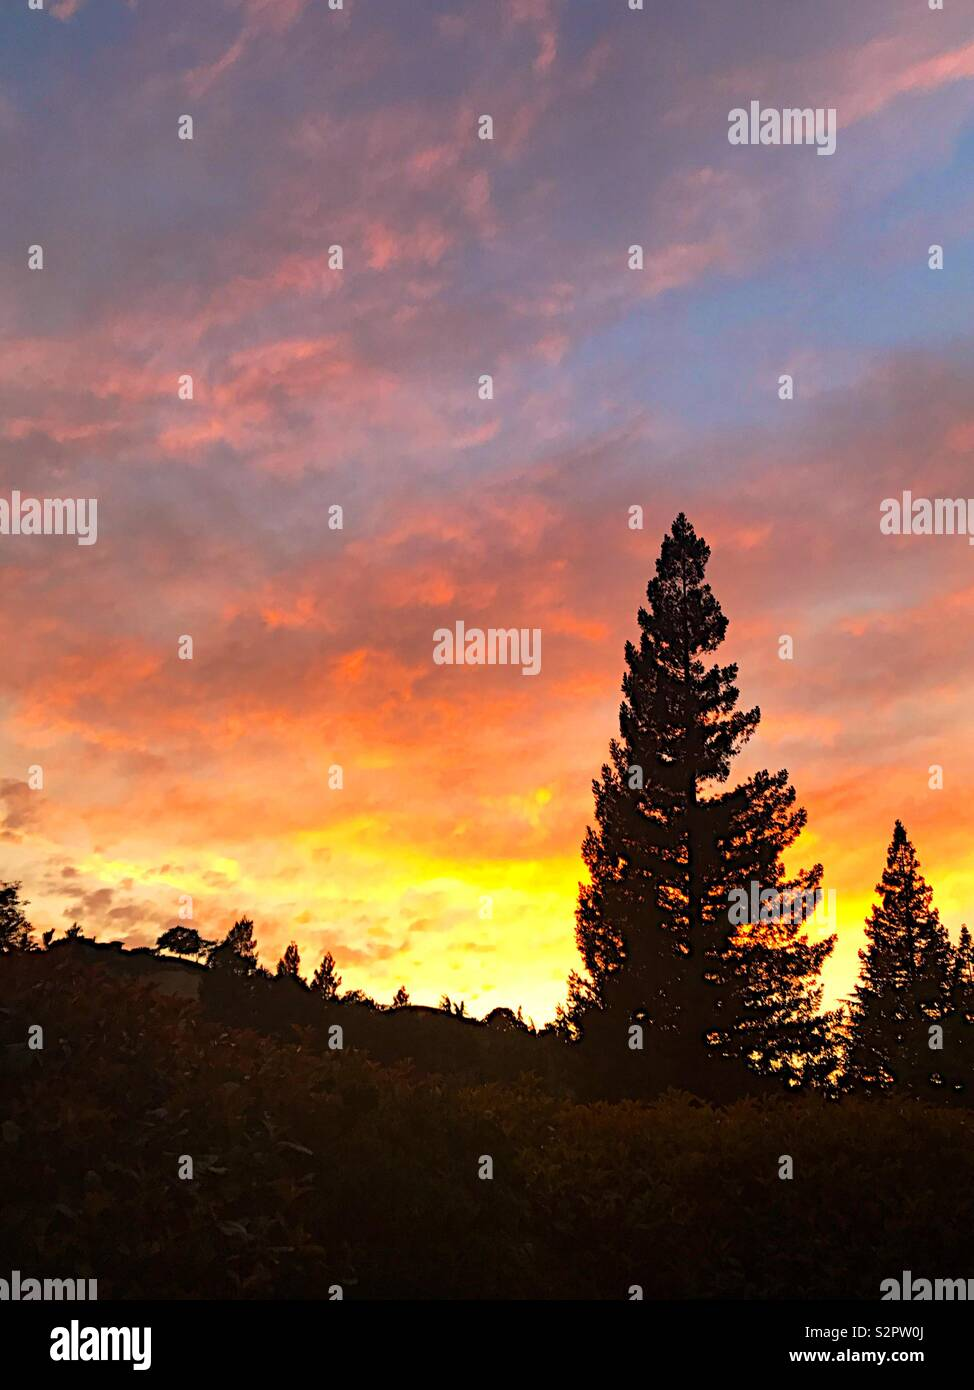 Pink sunset clouds over redwoods - Stock Image